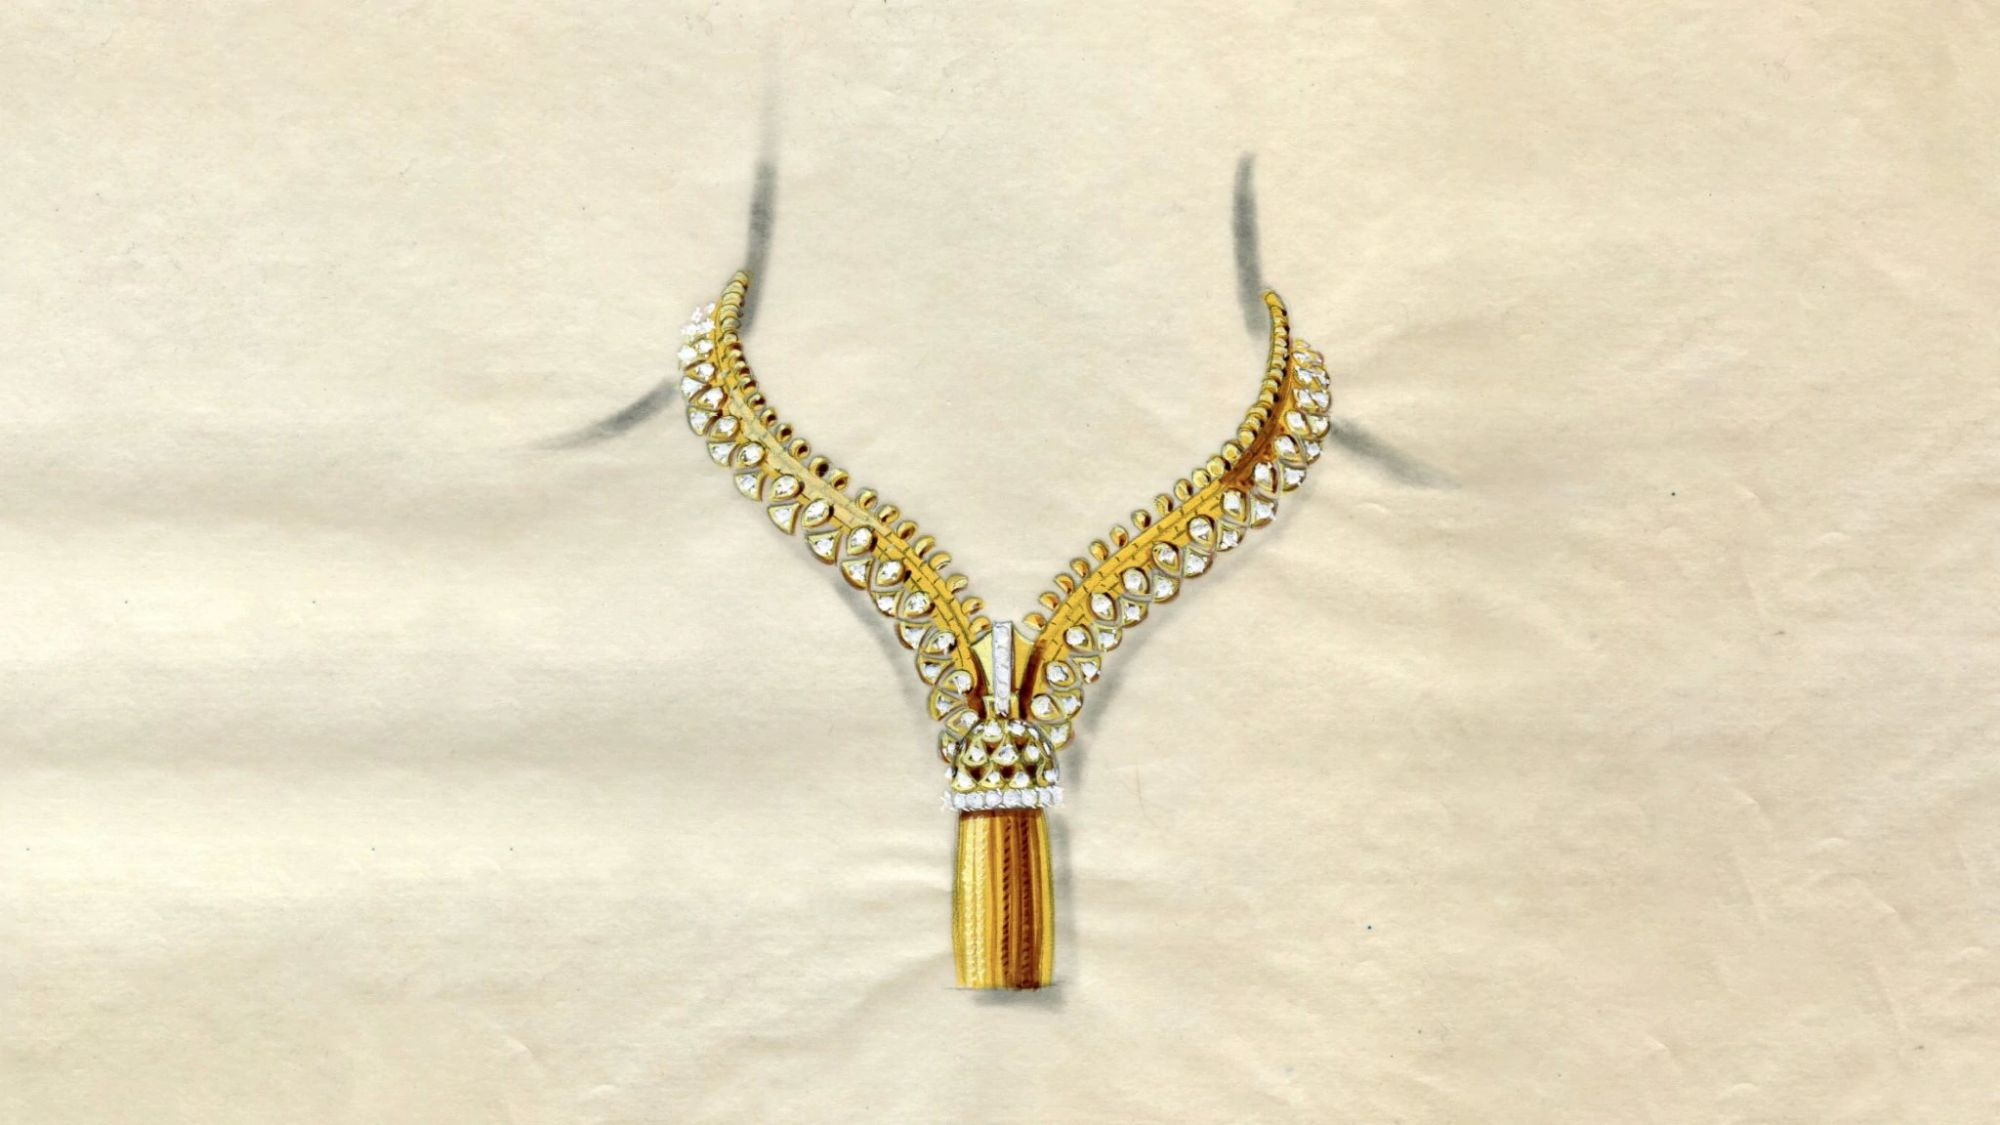 Windsor公爵夫人启发了Van Cleef& Arpels' Iconic Zip Necklace